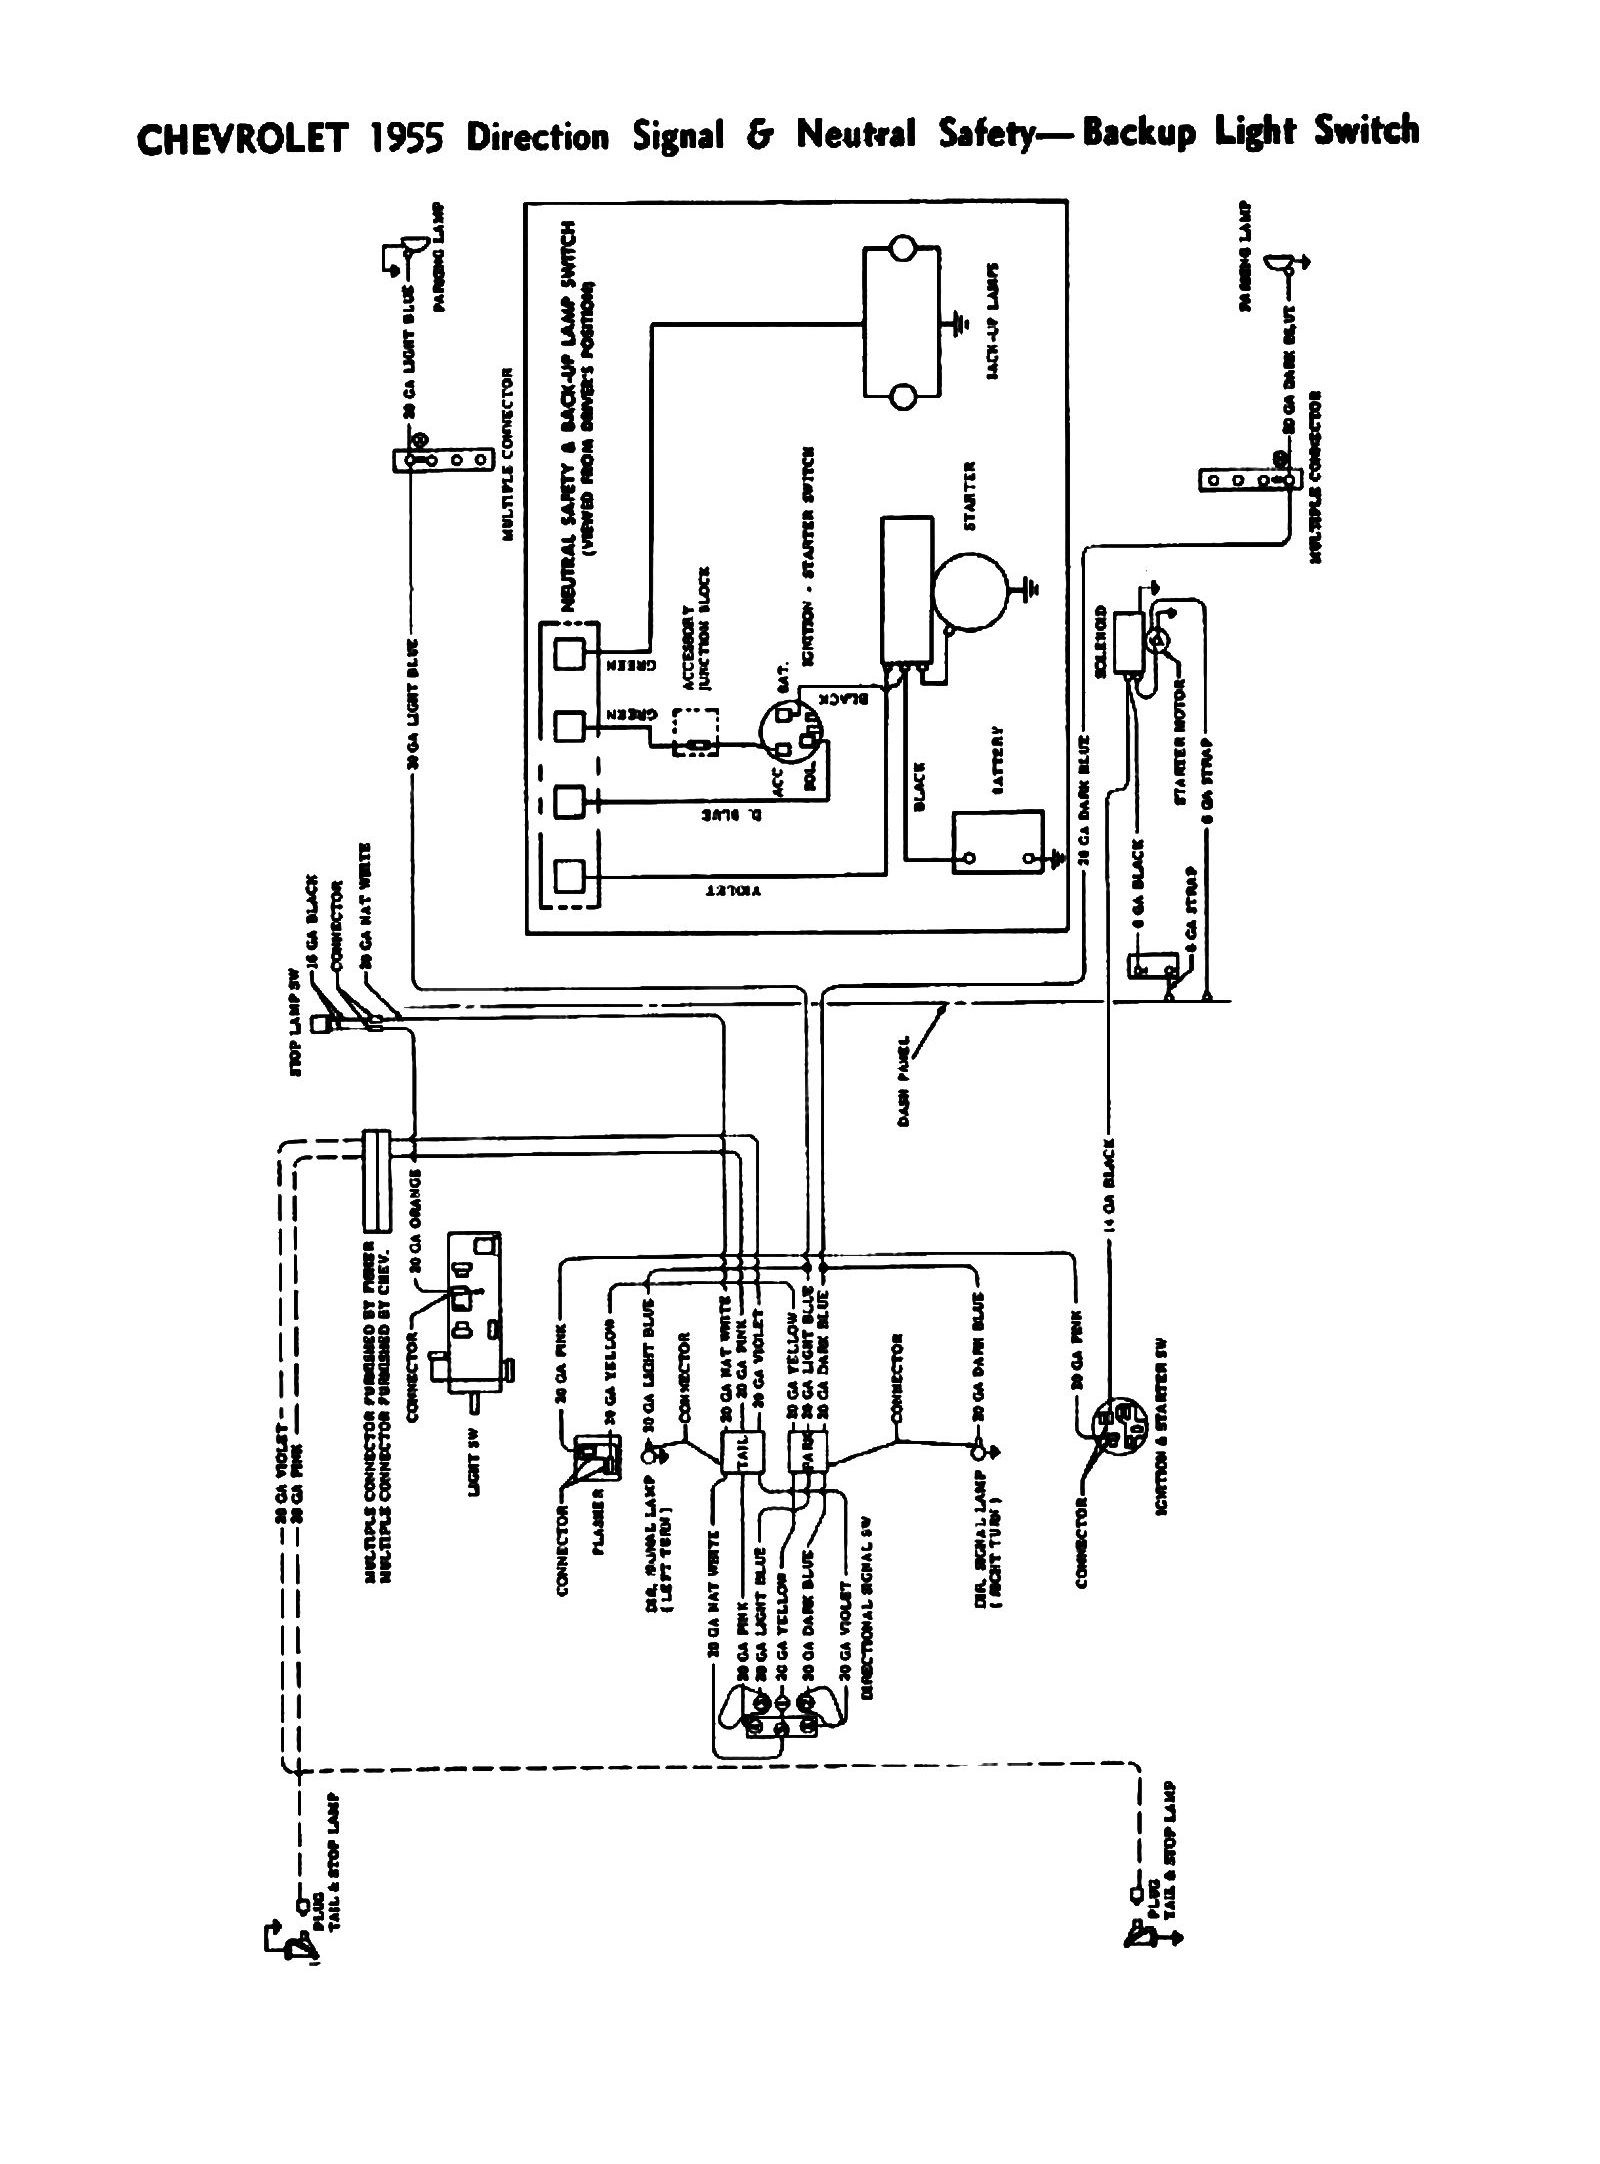 1997 Chevy S10 Wiring Diagram My Blower In Addition 57 Heater Also 1996 Beautiful Ignition Switch 40 Electric Hot Rh Elvenlabs At